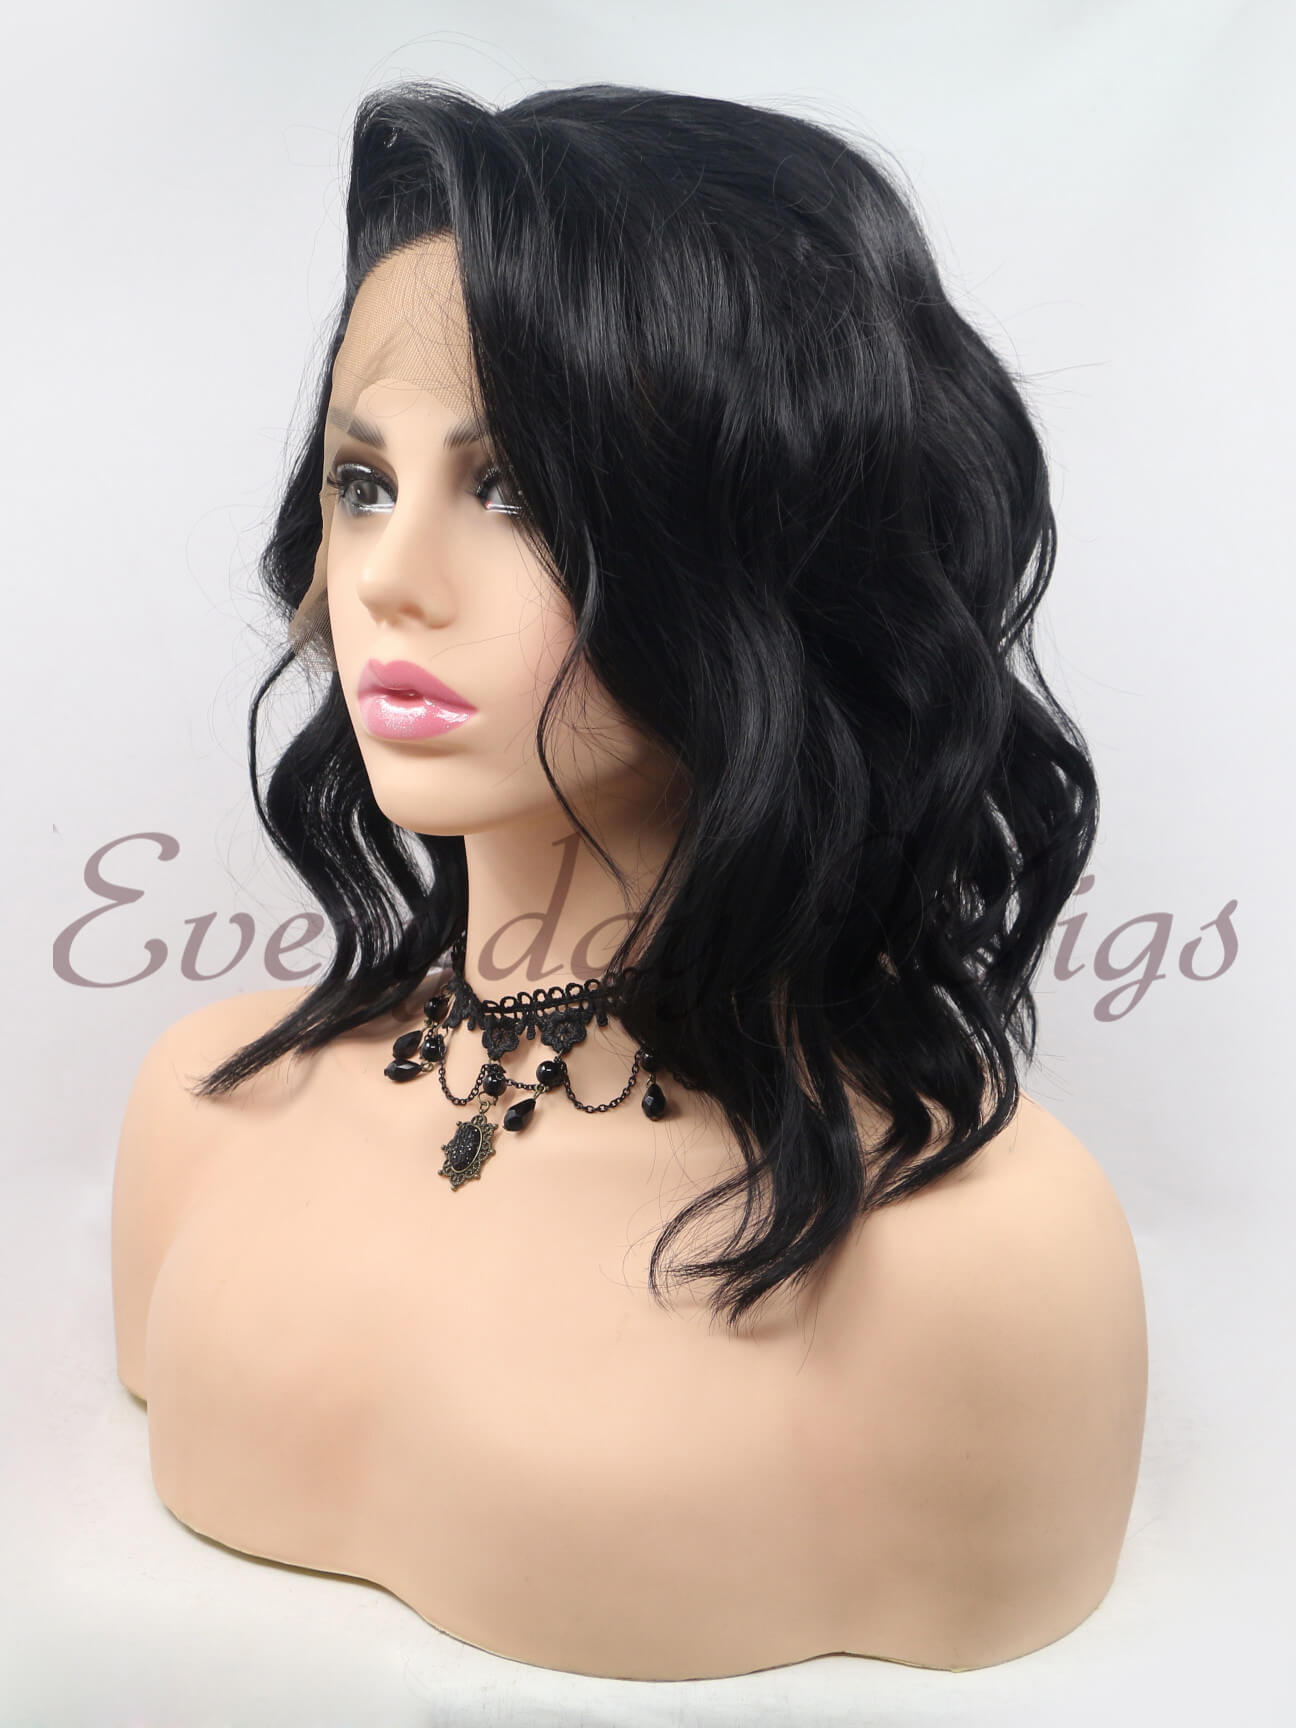 Orange Wig Bob 14 Black Bob Wig Curly Synthetic Wig Edw271